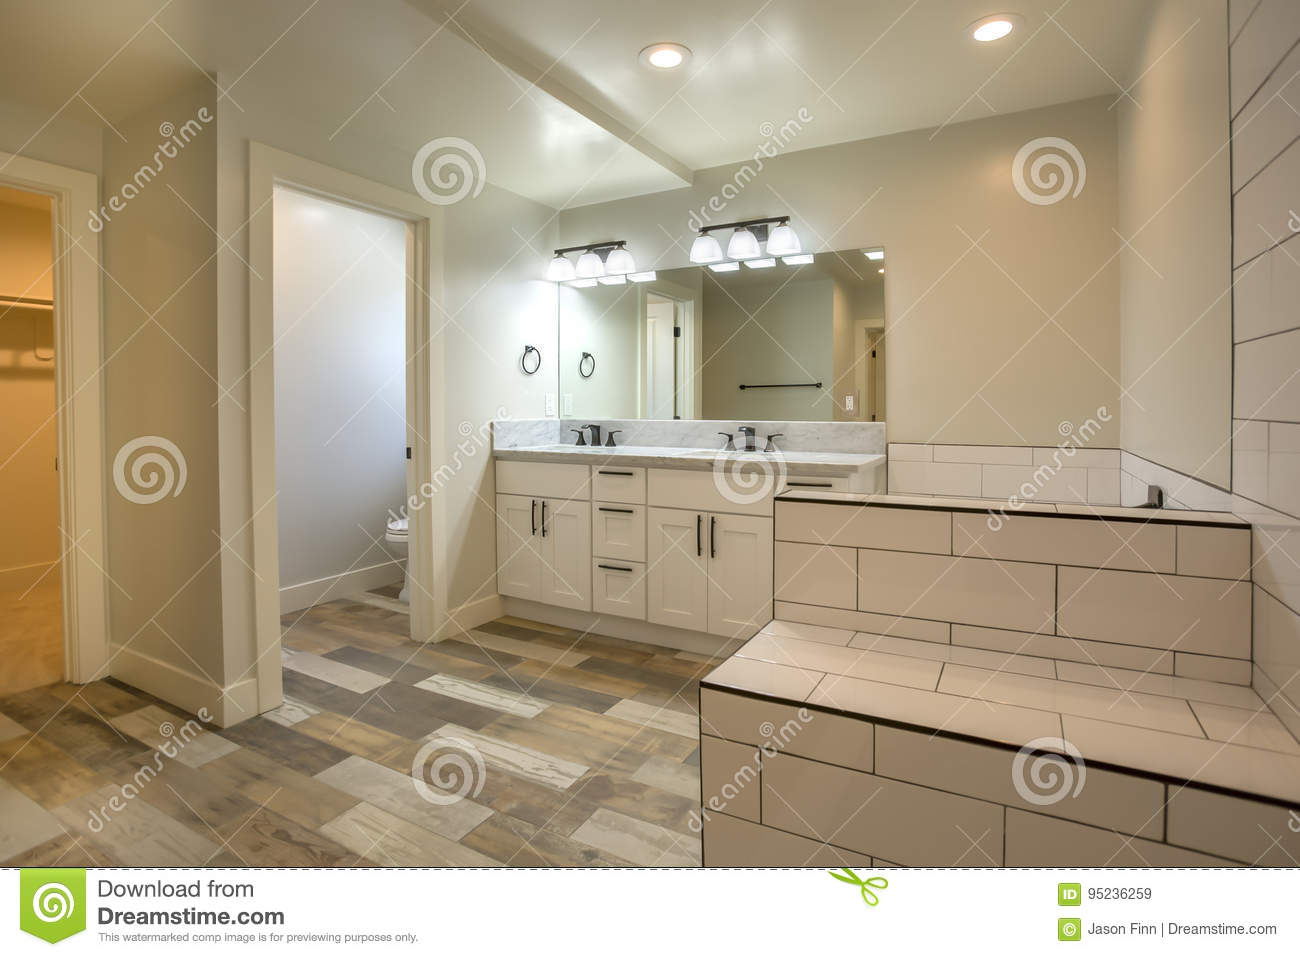 White tile and dark wood floors in open clean bathroom model home san diego southern california